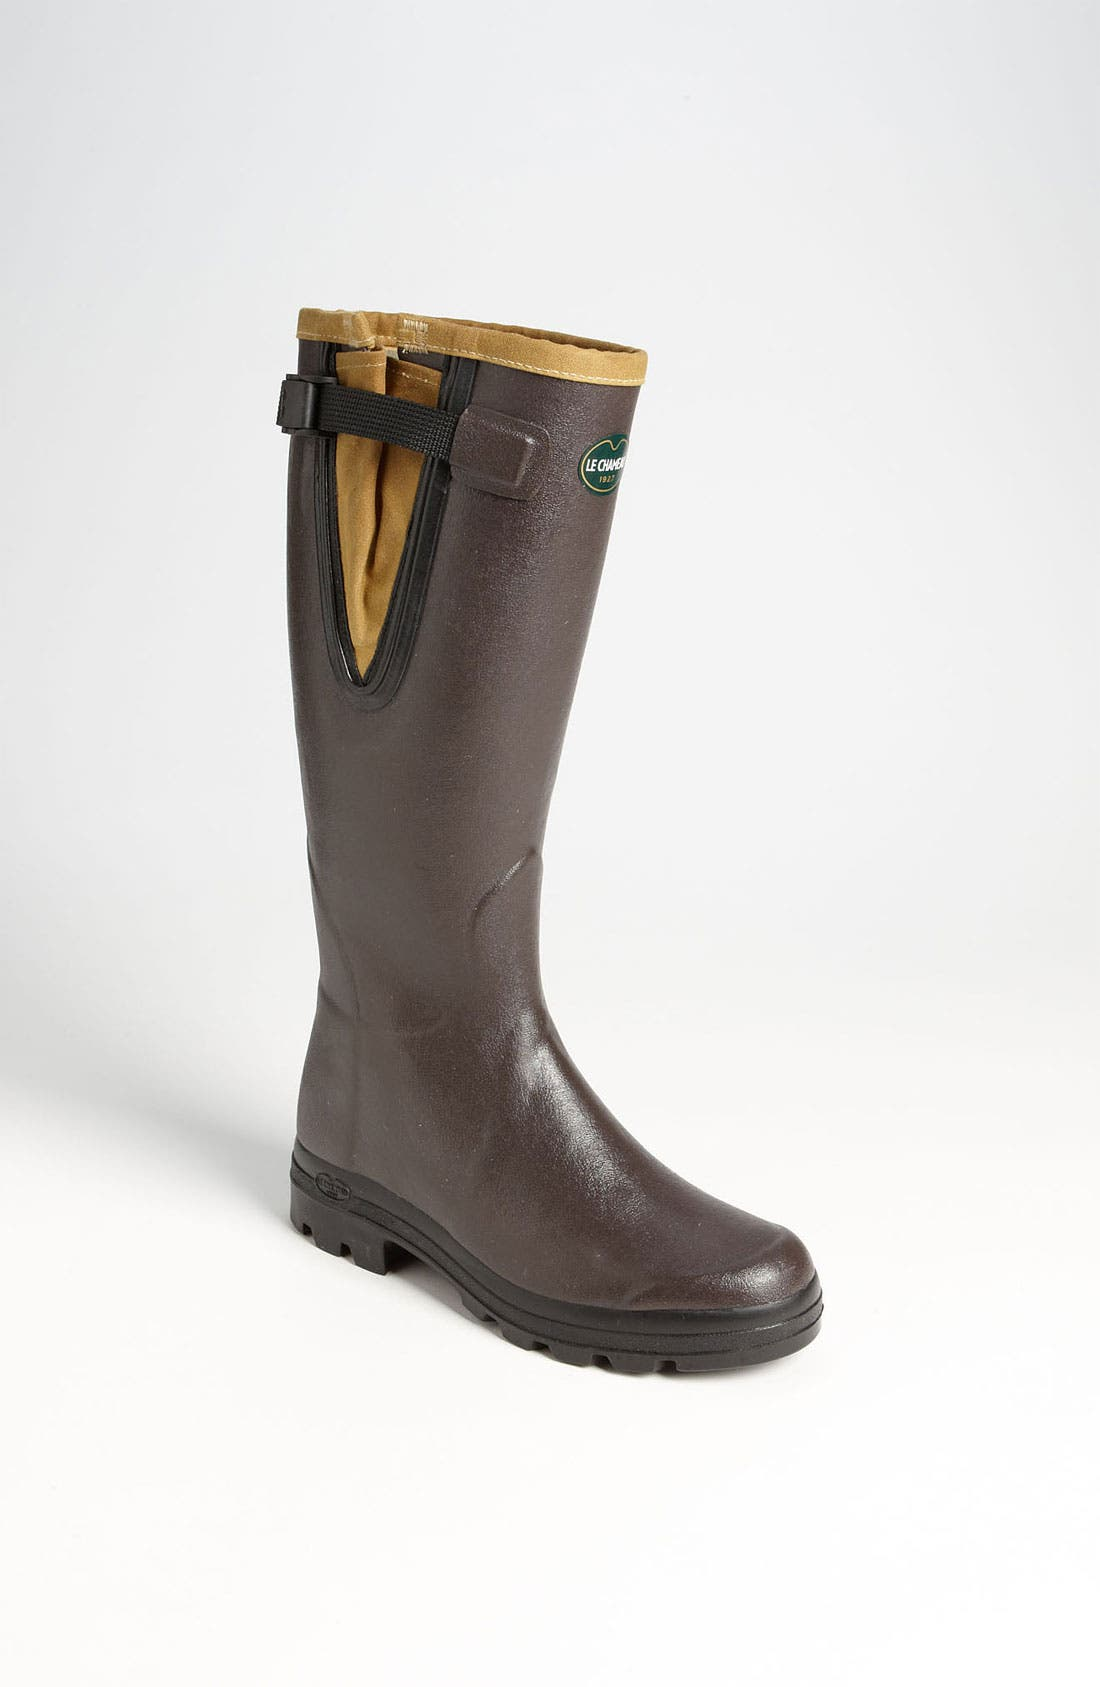 Alternate Image 1 Selected - Le Chameau 'Filson Vierzon' Rain Boot